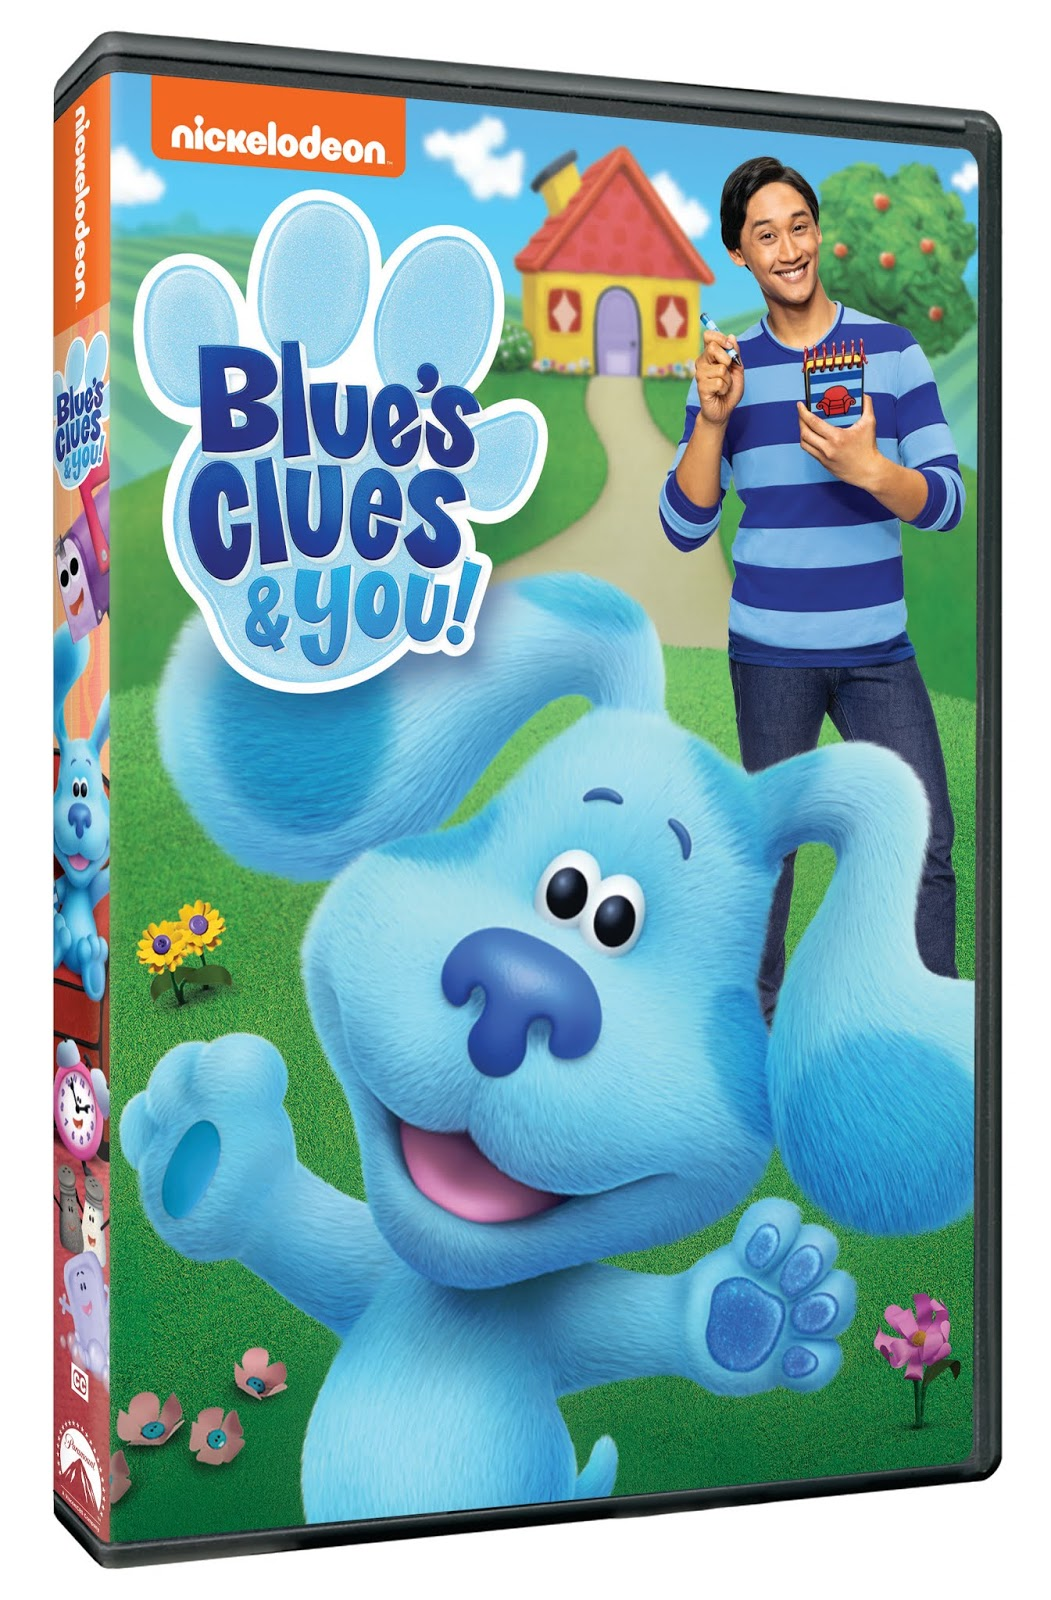 Blue's Clues Song : blue's, clues, NickALive!:, Nickelodeon, Announces, 'Blue's, Clues